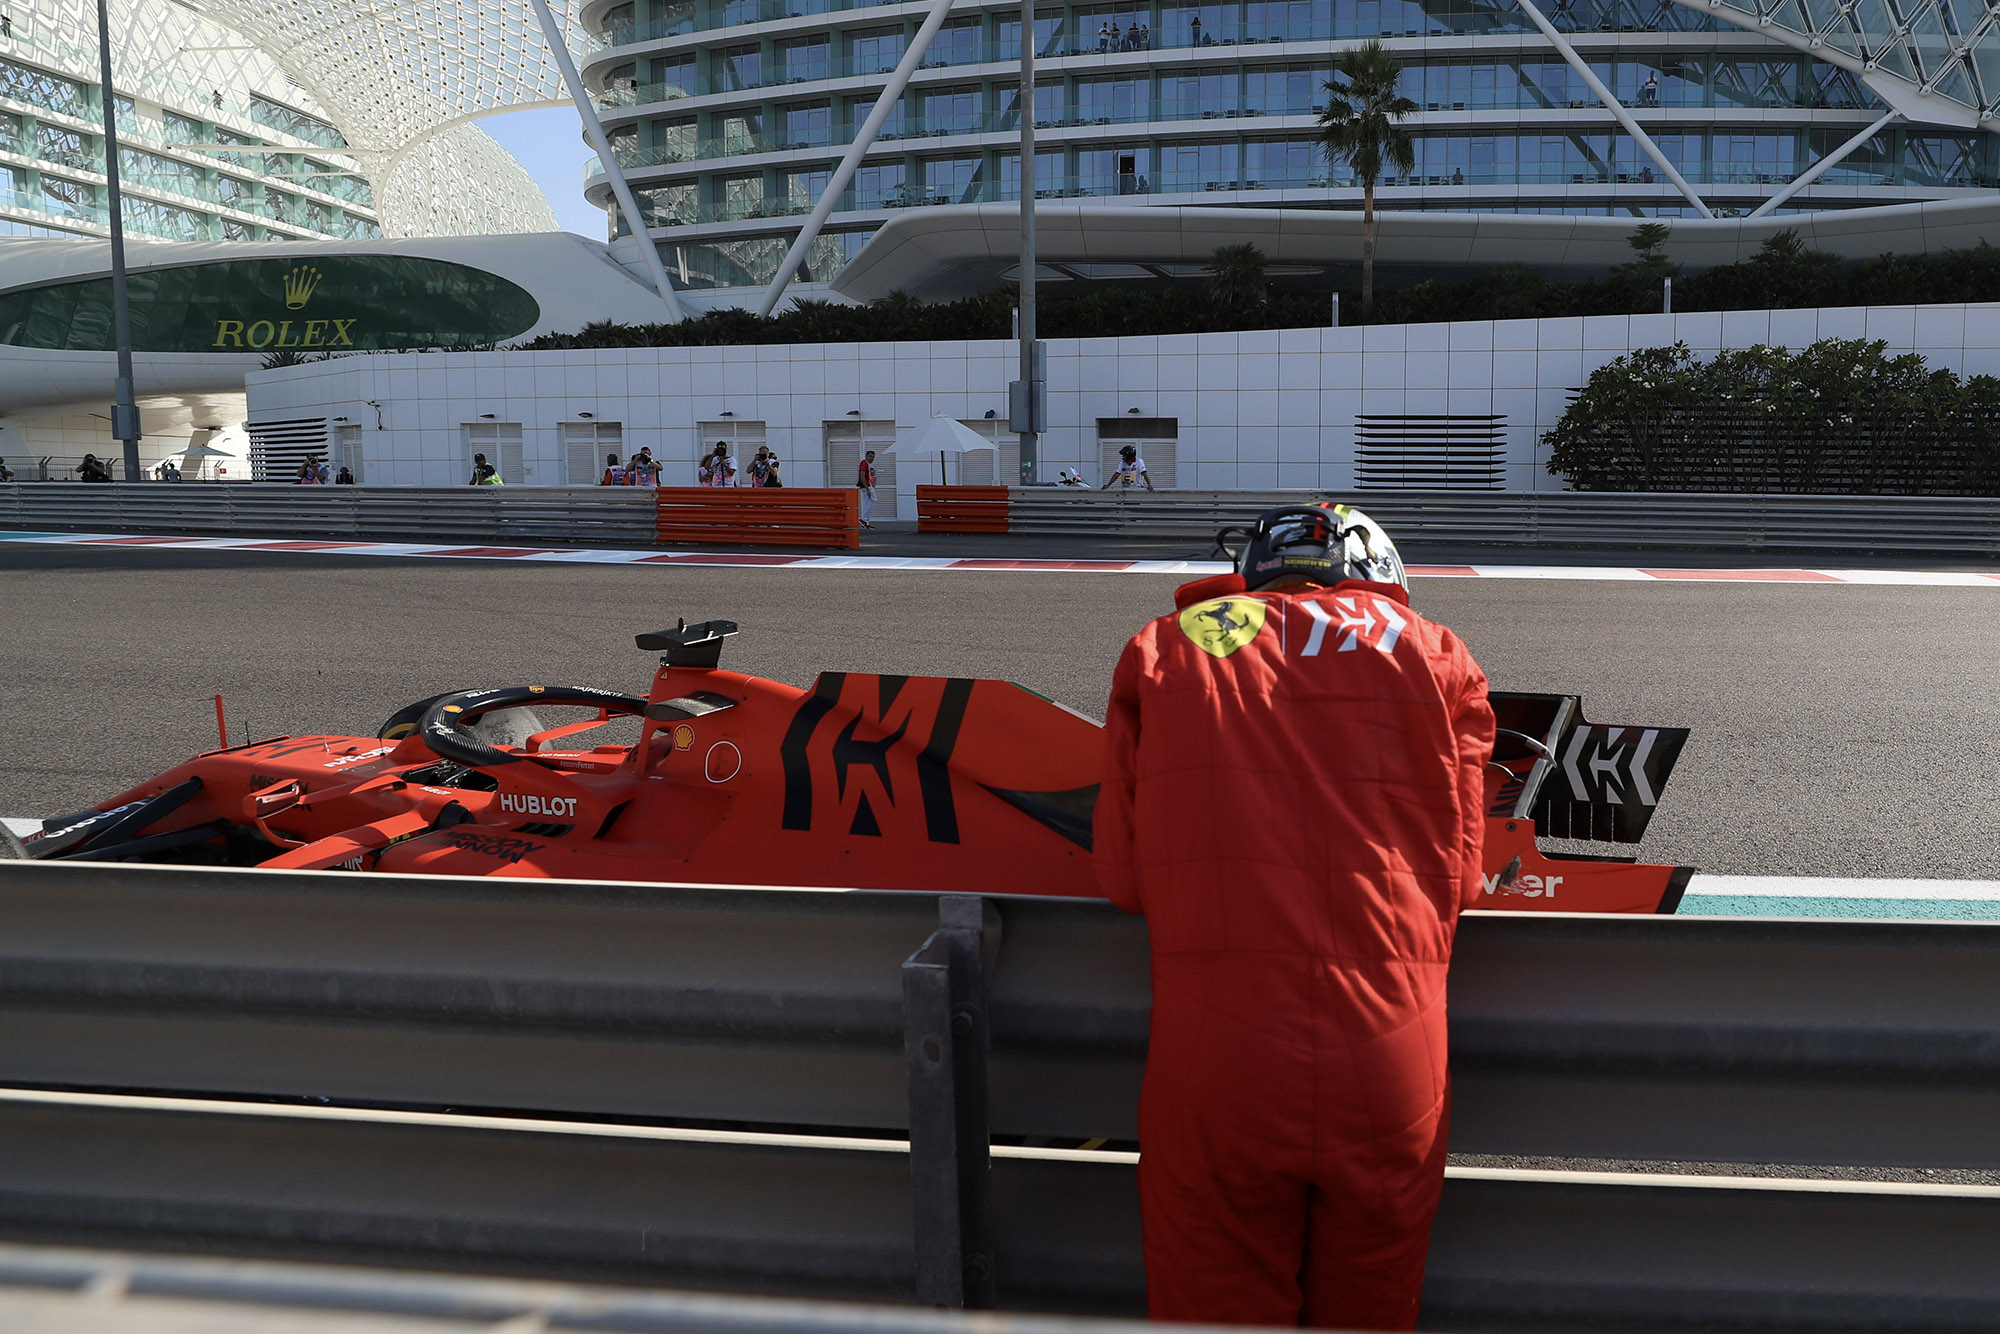 Sebastian Vettel leans against the barrier after crashing out of FP1 ahead of the 2019 Abu Dhabi Grand Prix